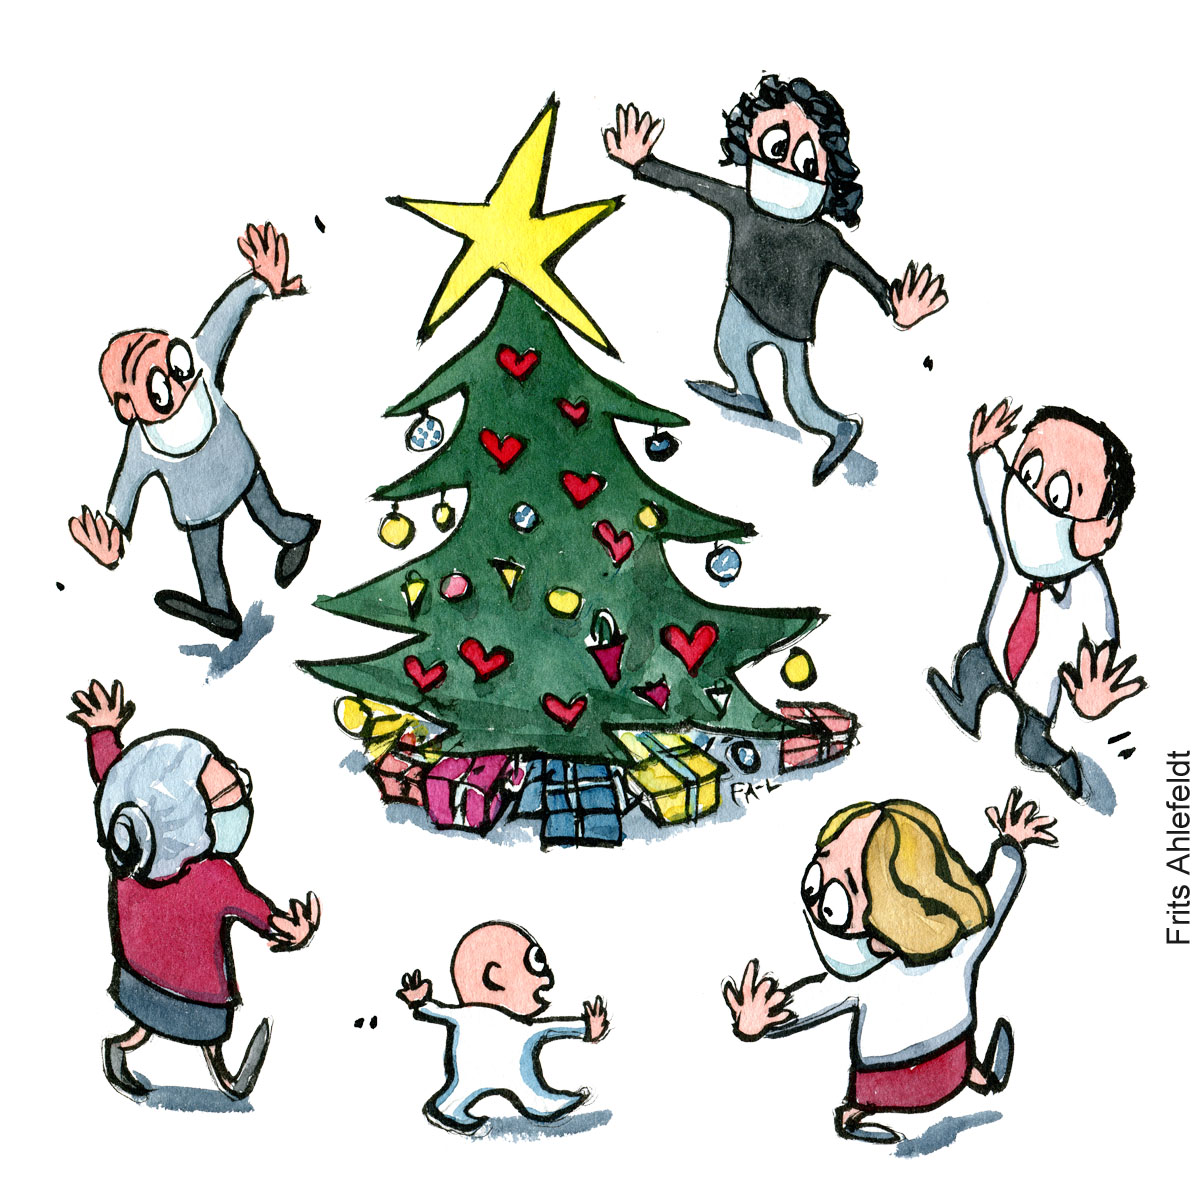 People dancing around Christmas tree while keeping covid virus distance. Illustration by Frits Ahlefeldt